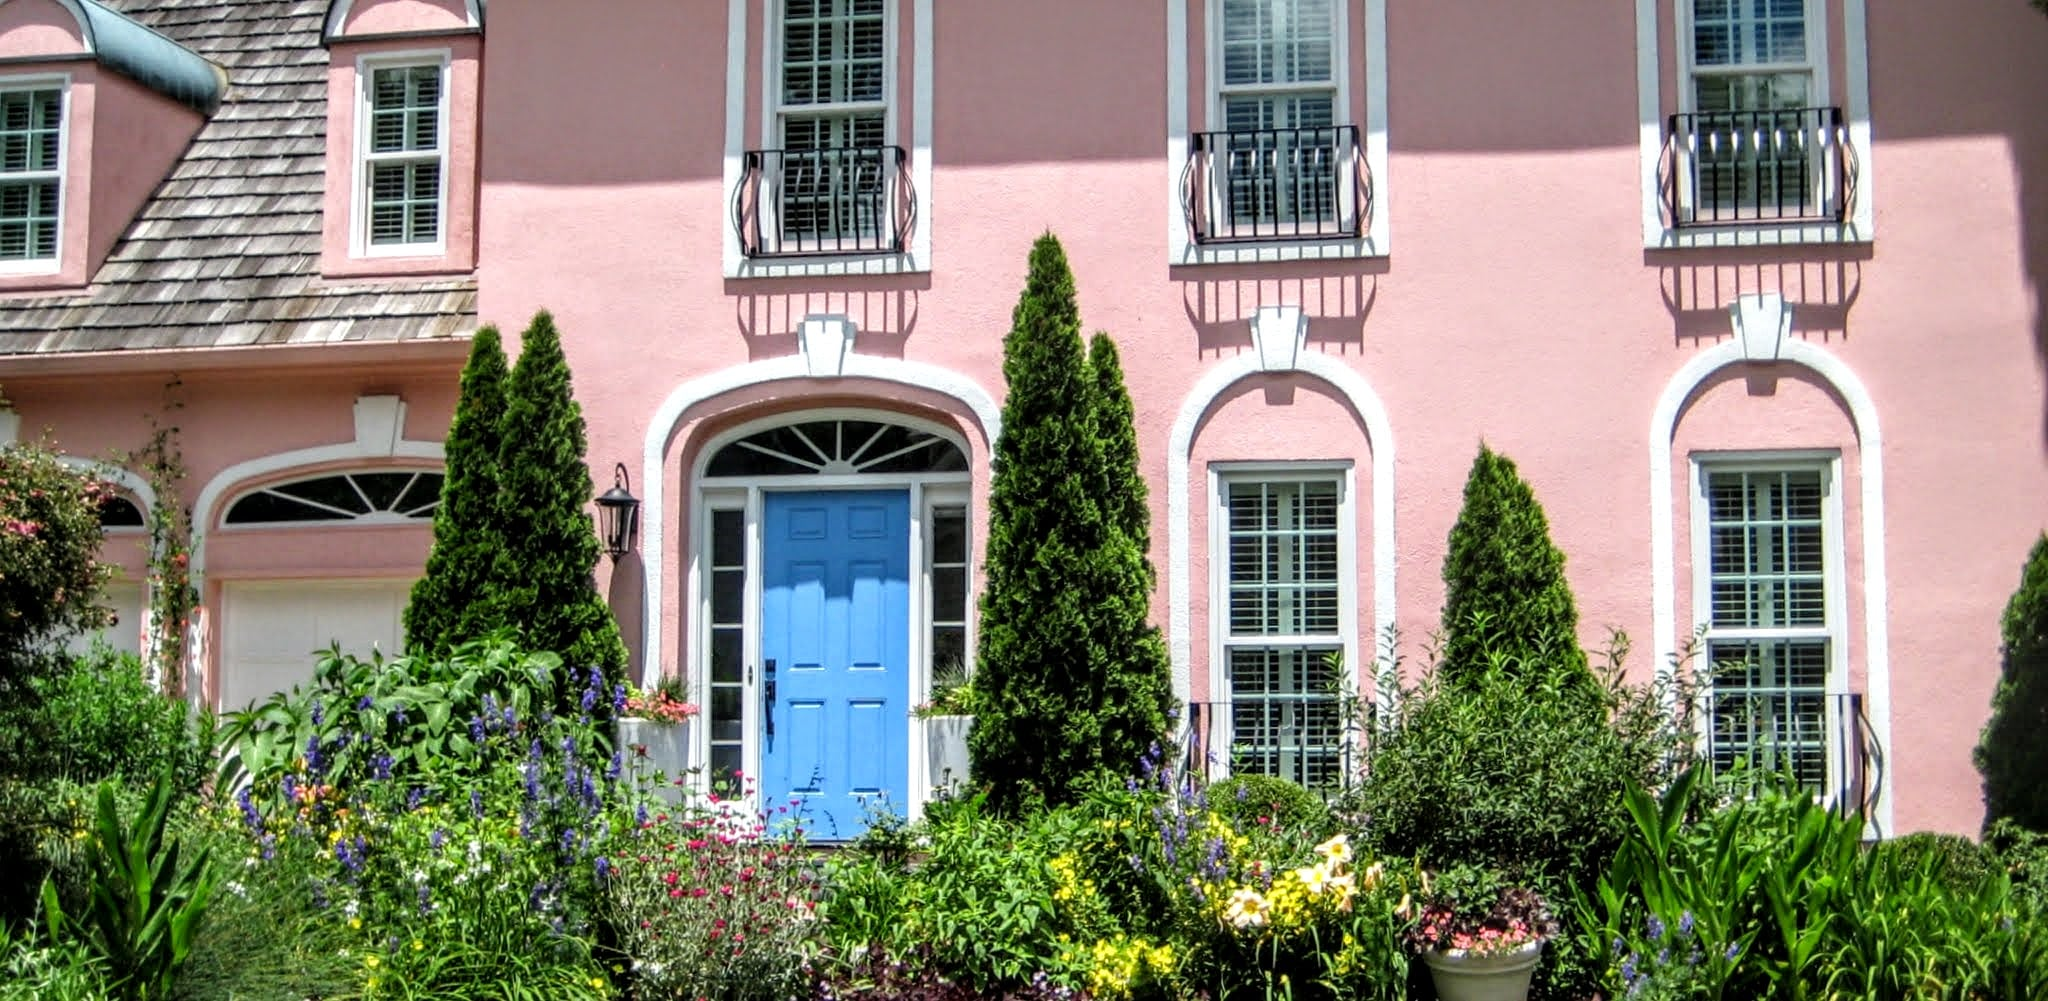 The Pink House on Carrbridge, Best Raleigh Neighborhoods, Midtown, Stonehenge, East of Creedmoor Road